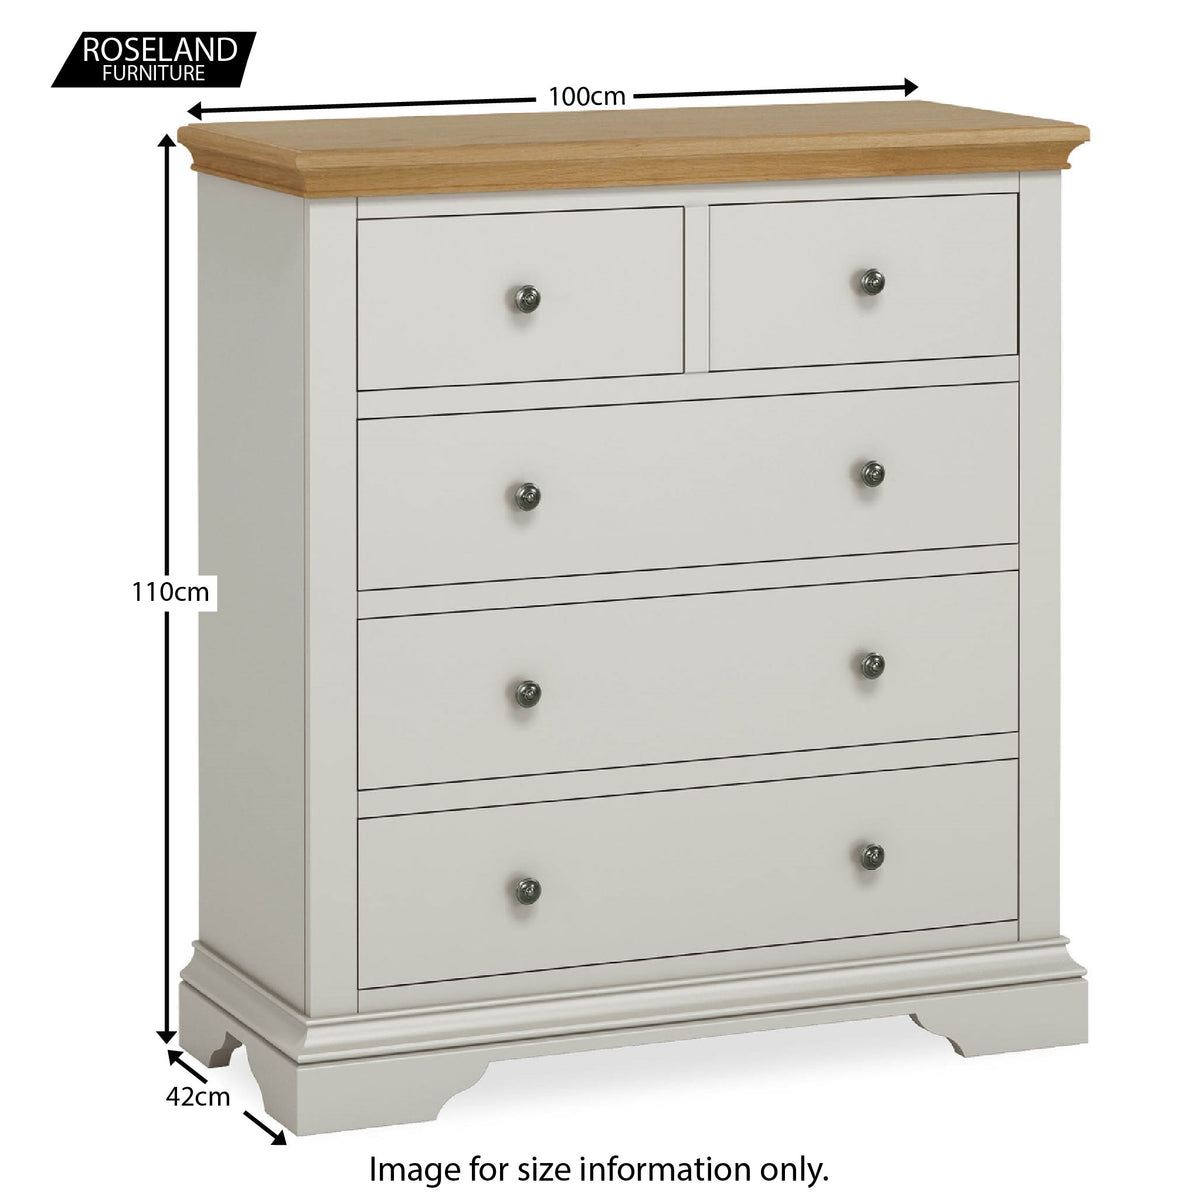 Normandy Grey 2 over 3 Chest of Drawers - Size Guide